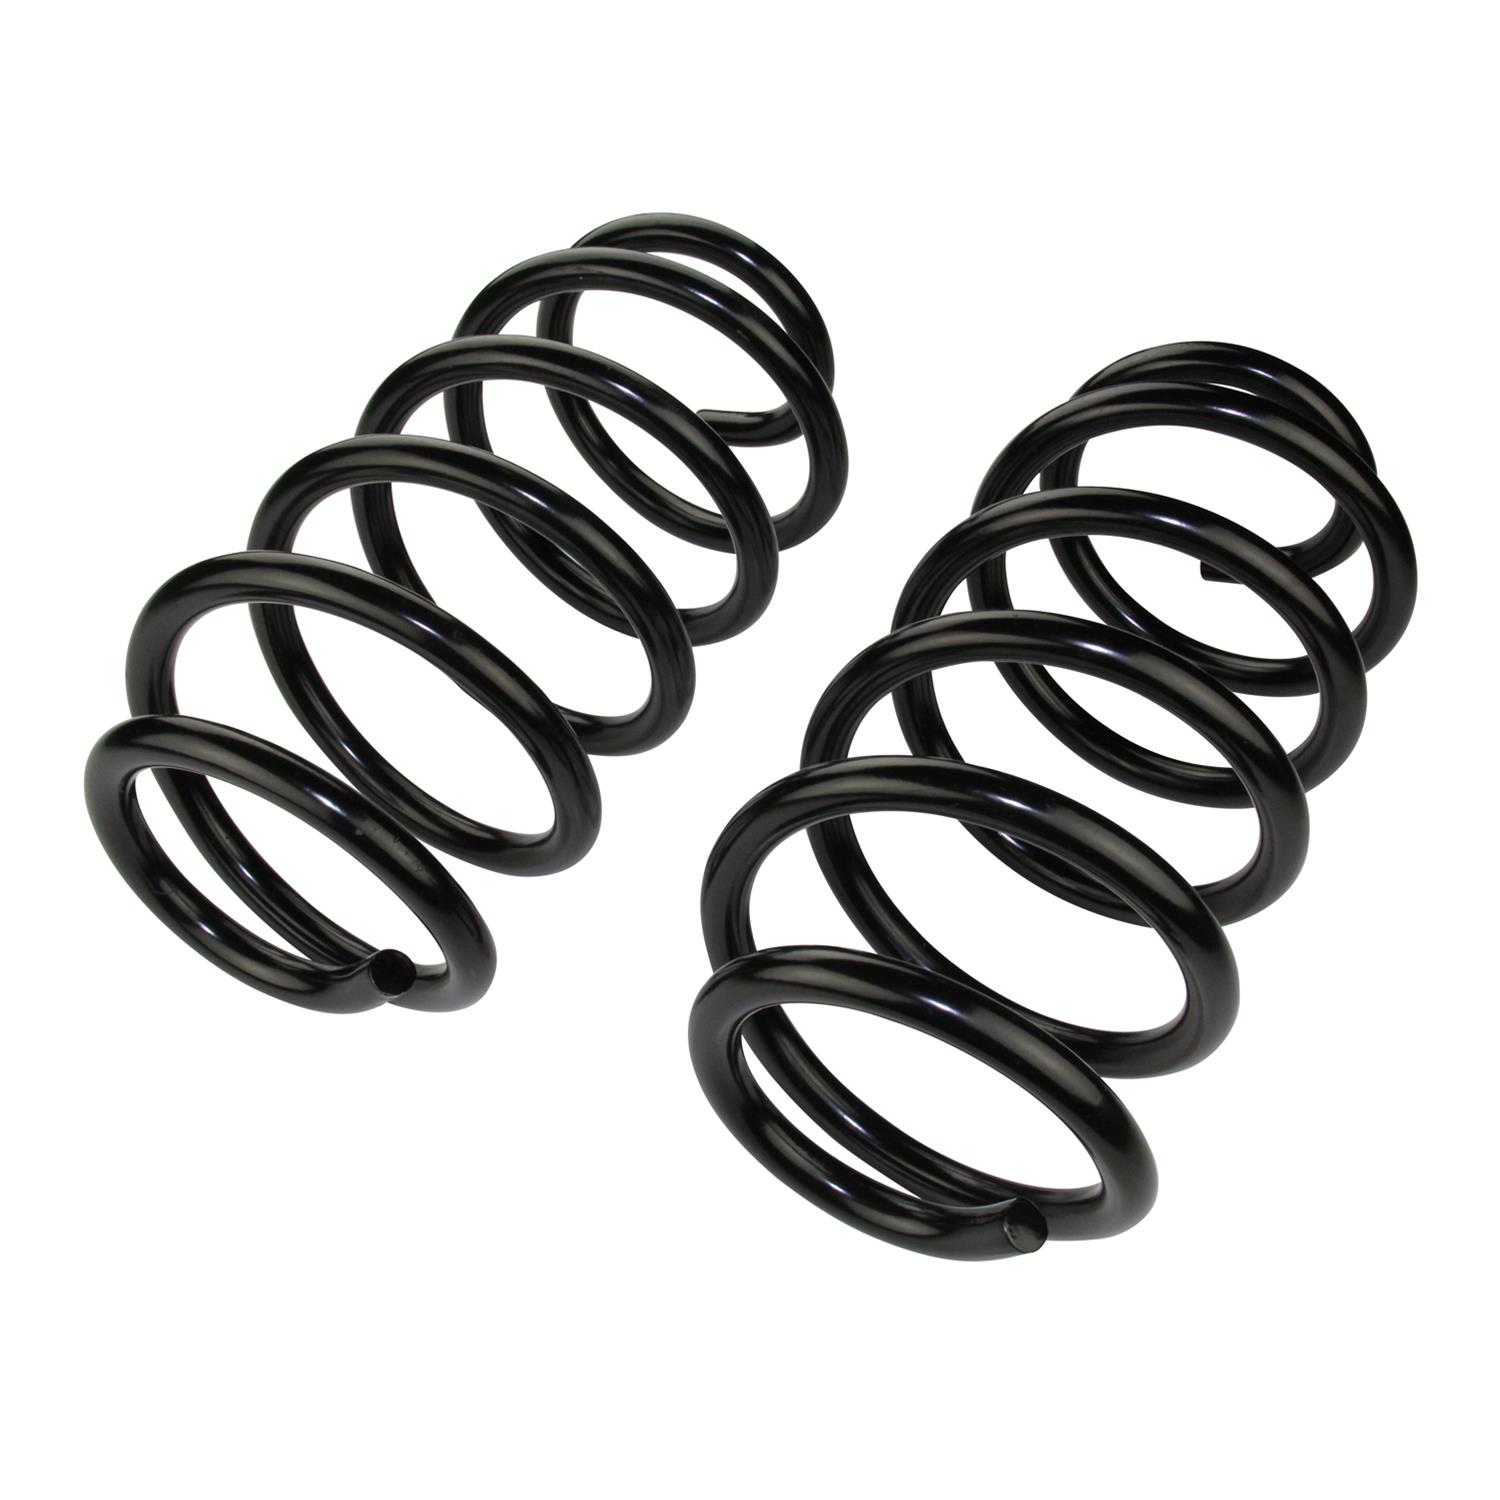 MOOG Chassis Products Moog 81633 Coil Spring Set